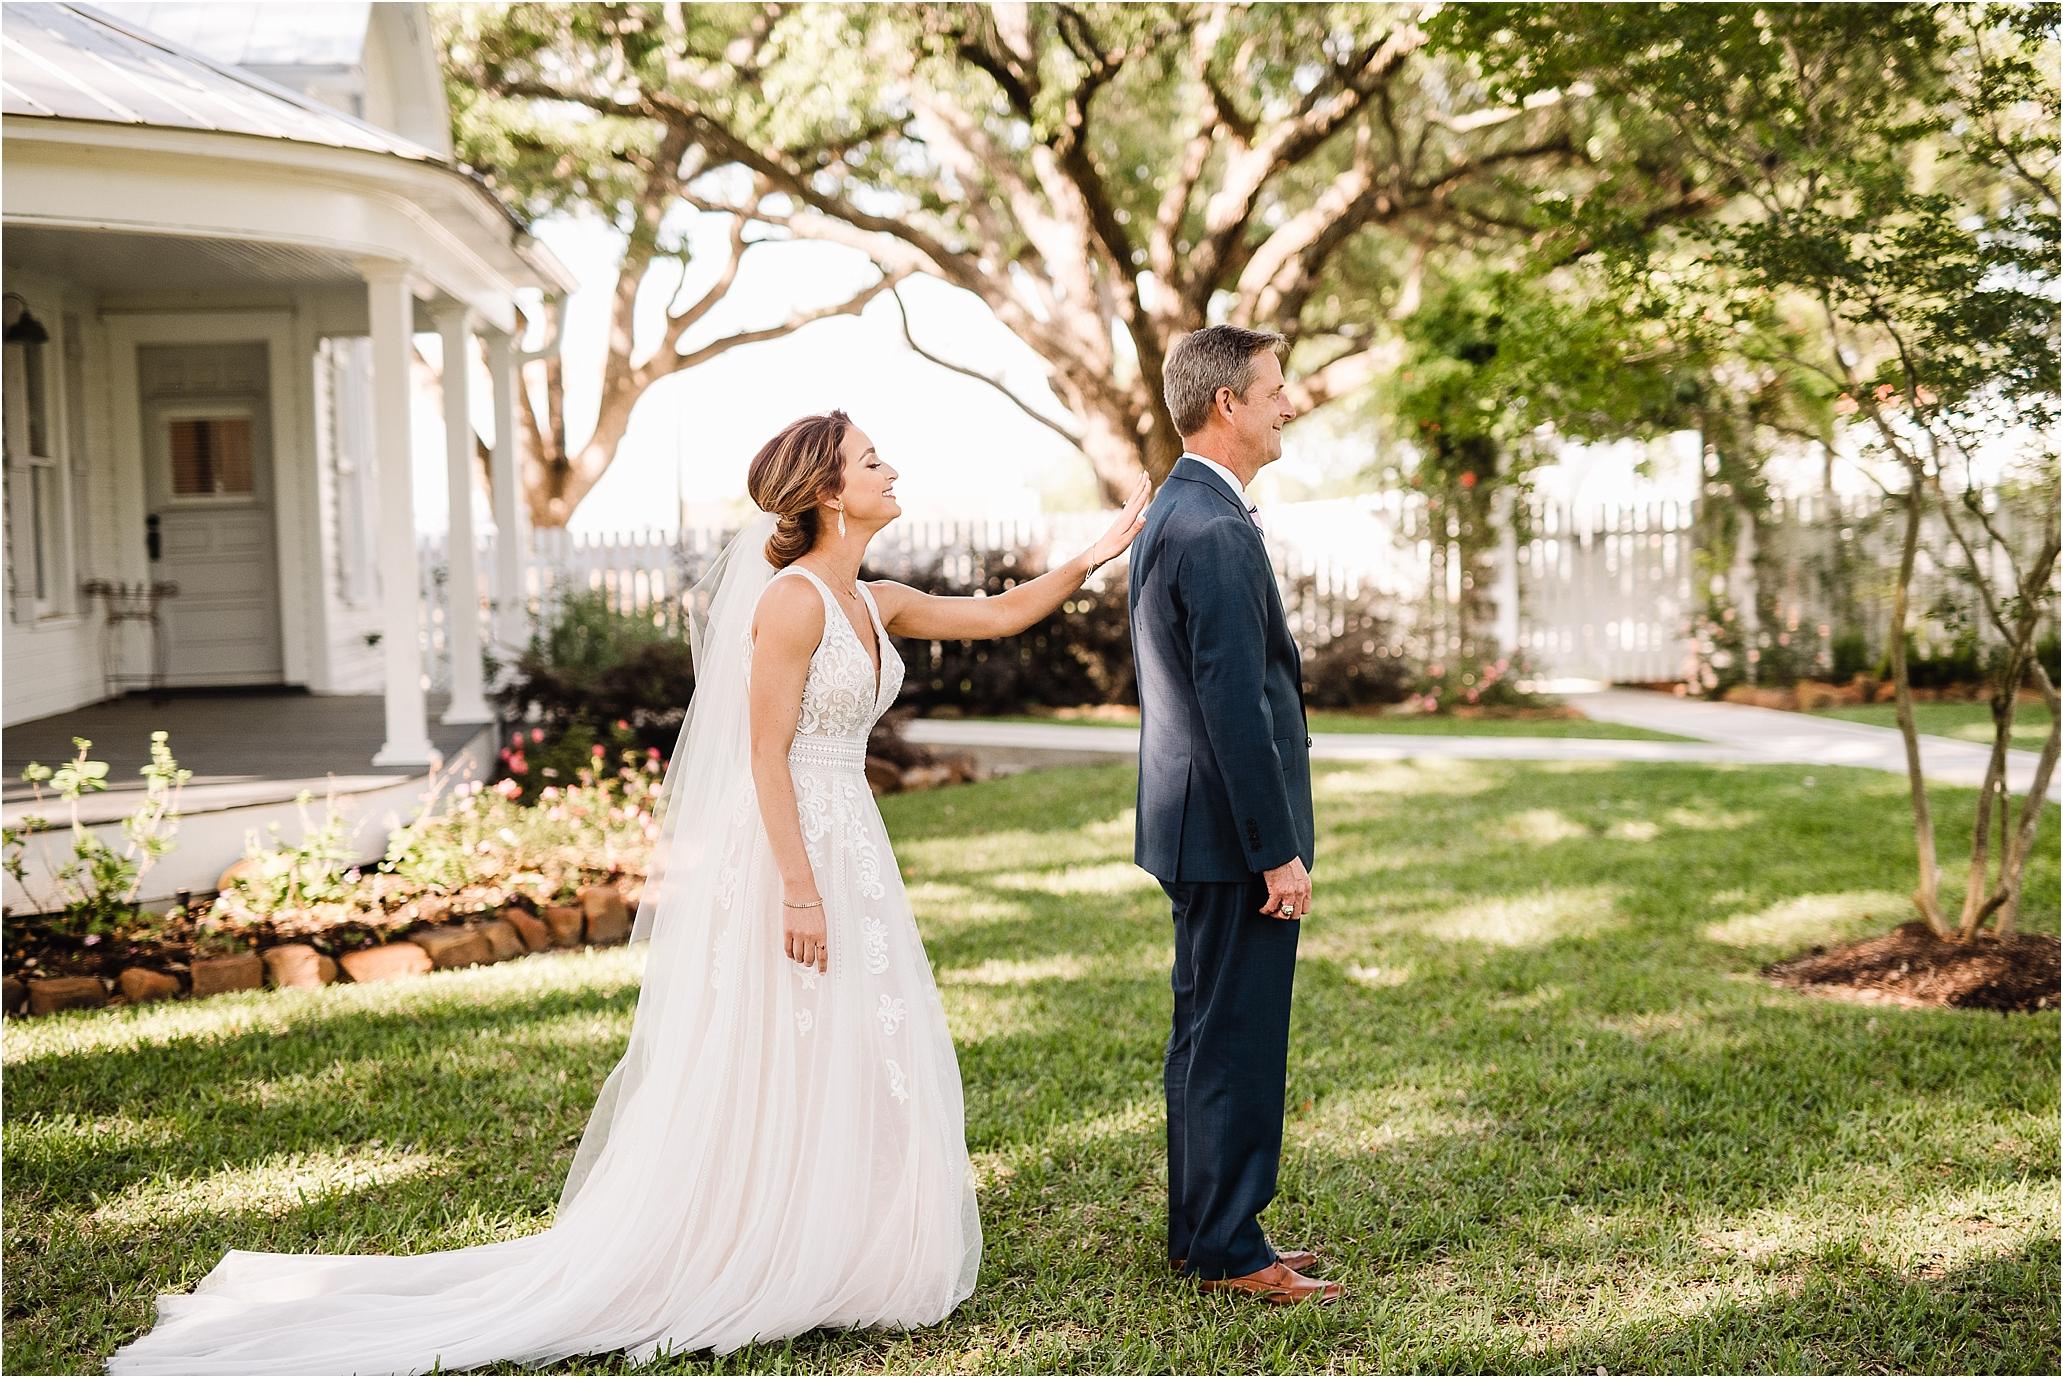 PattisonHouse_TexasWeddingPhotographer_CarlyCrockett&MattBrownWedding_0095.jpg